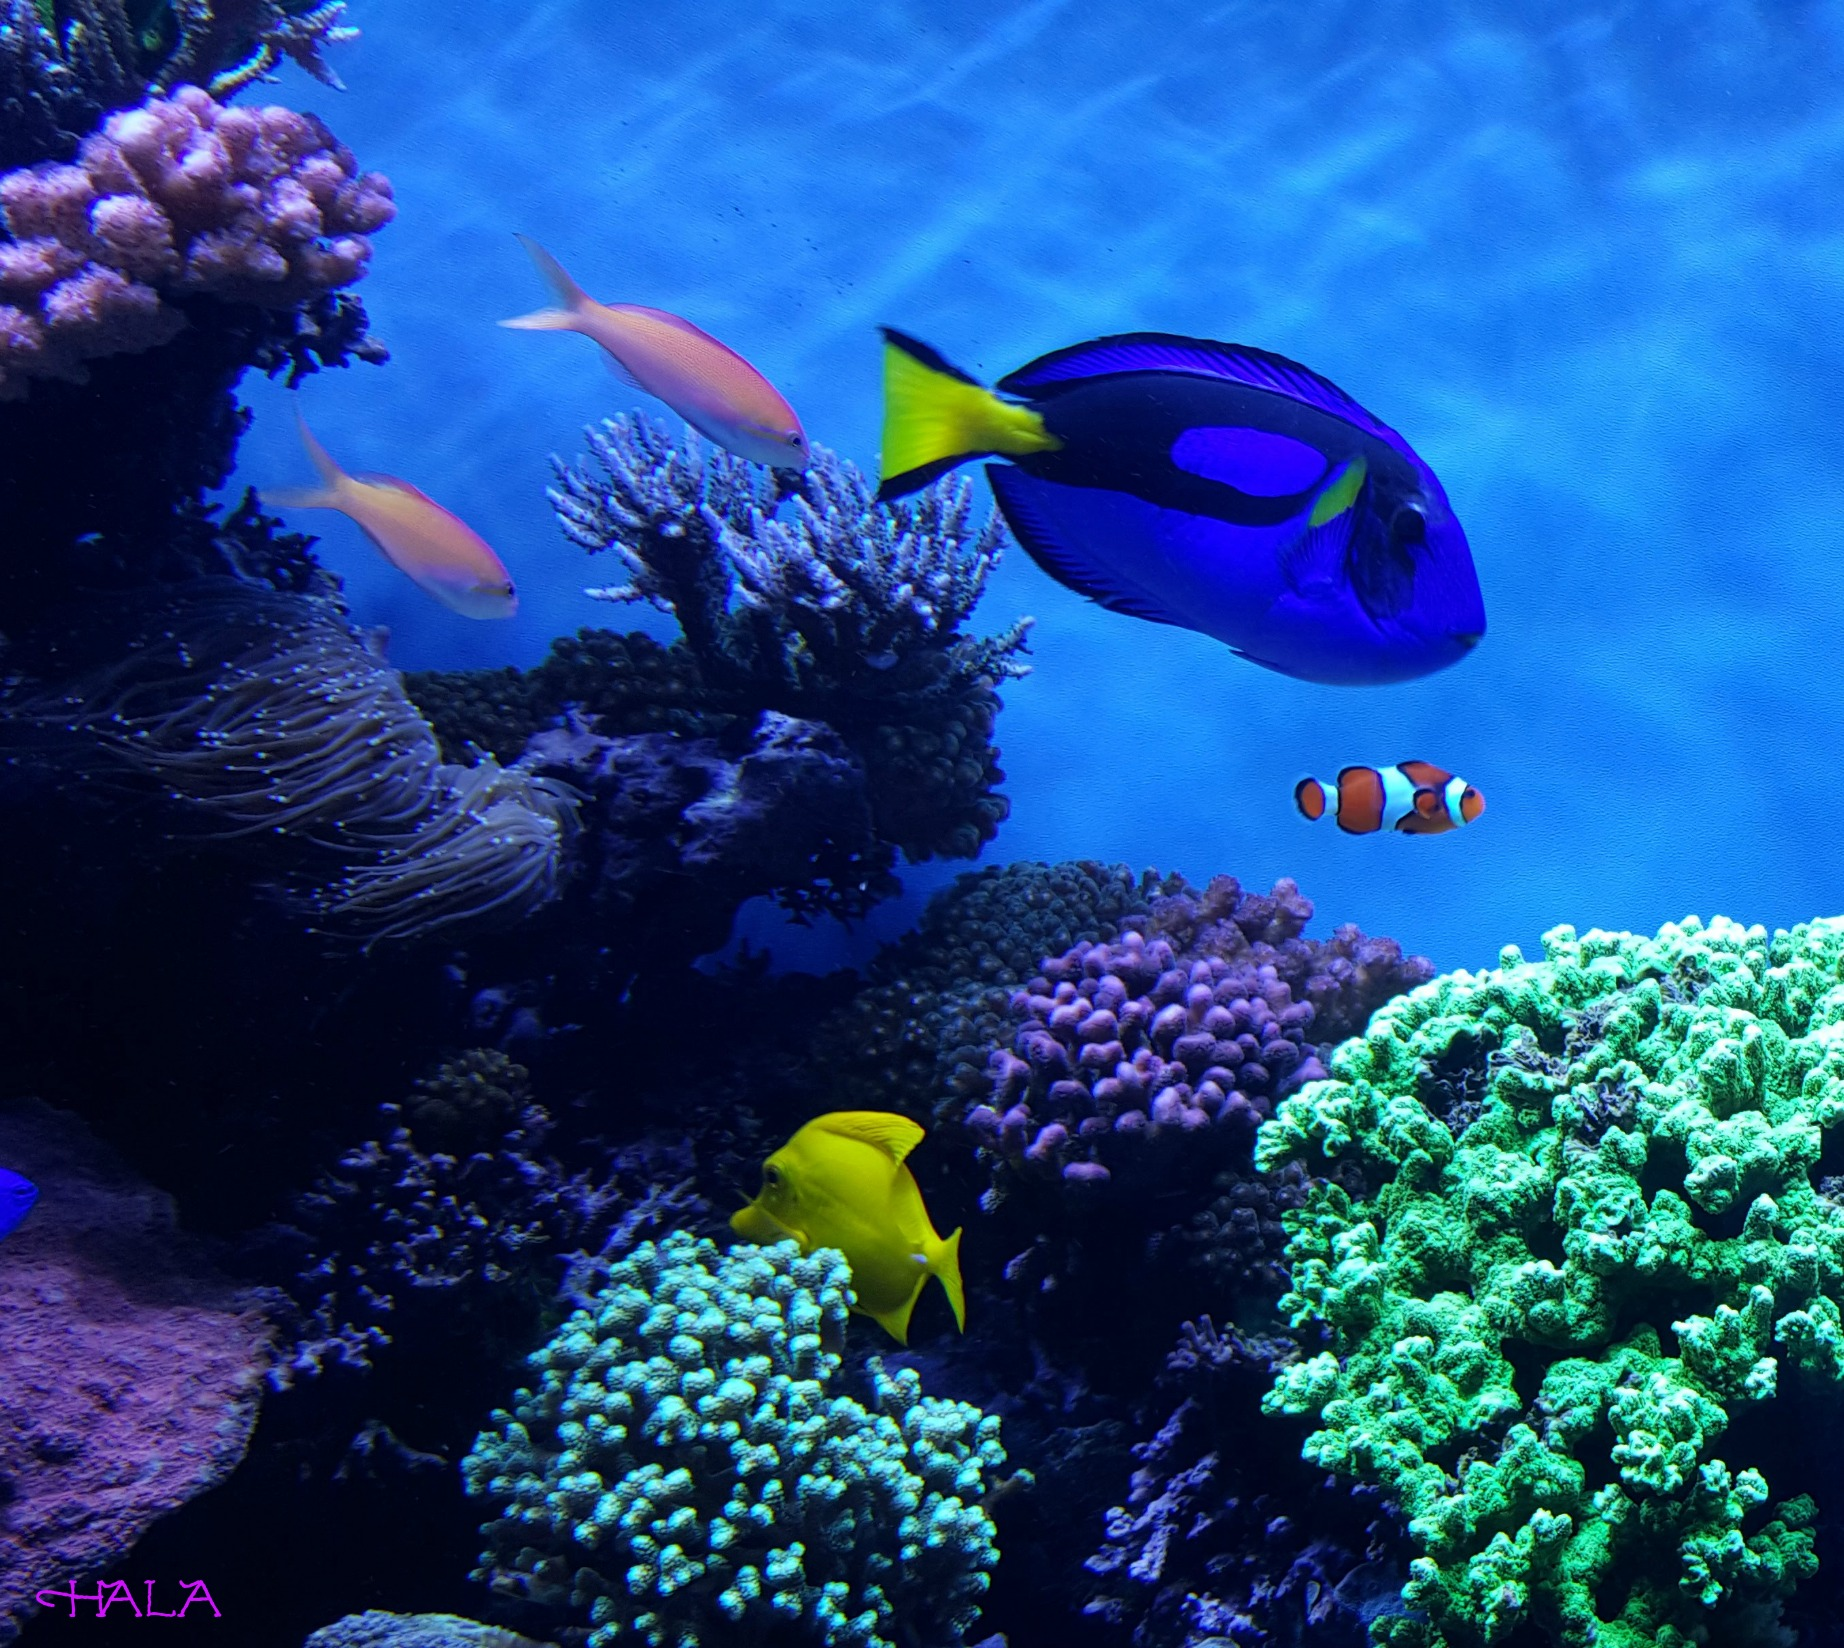 Finding dory at the monterey bay aquarium for Finding dory fish tank